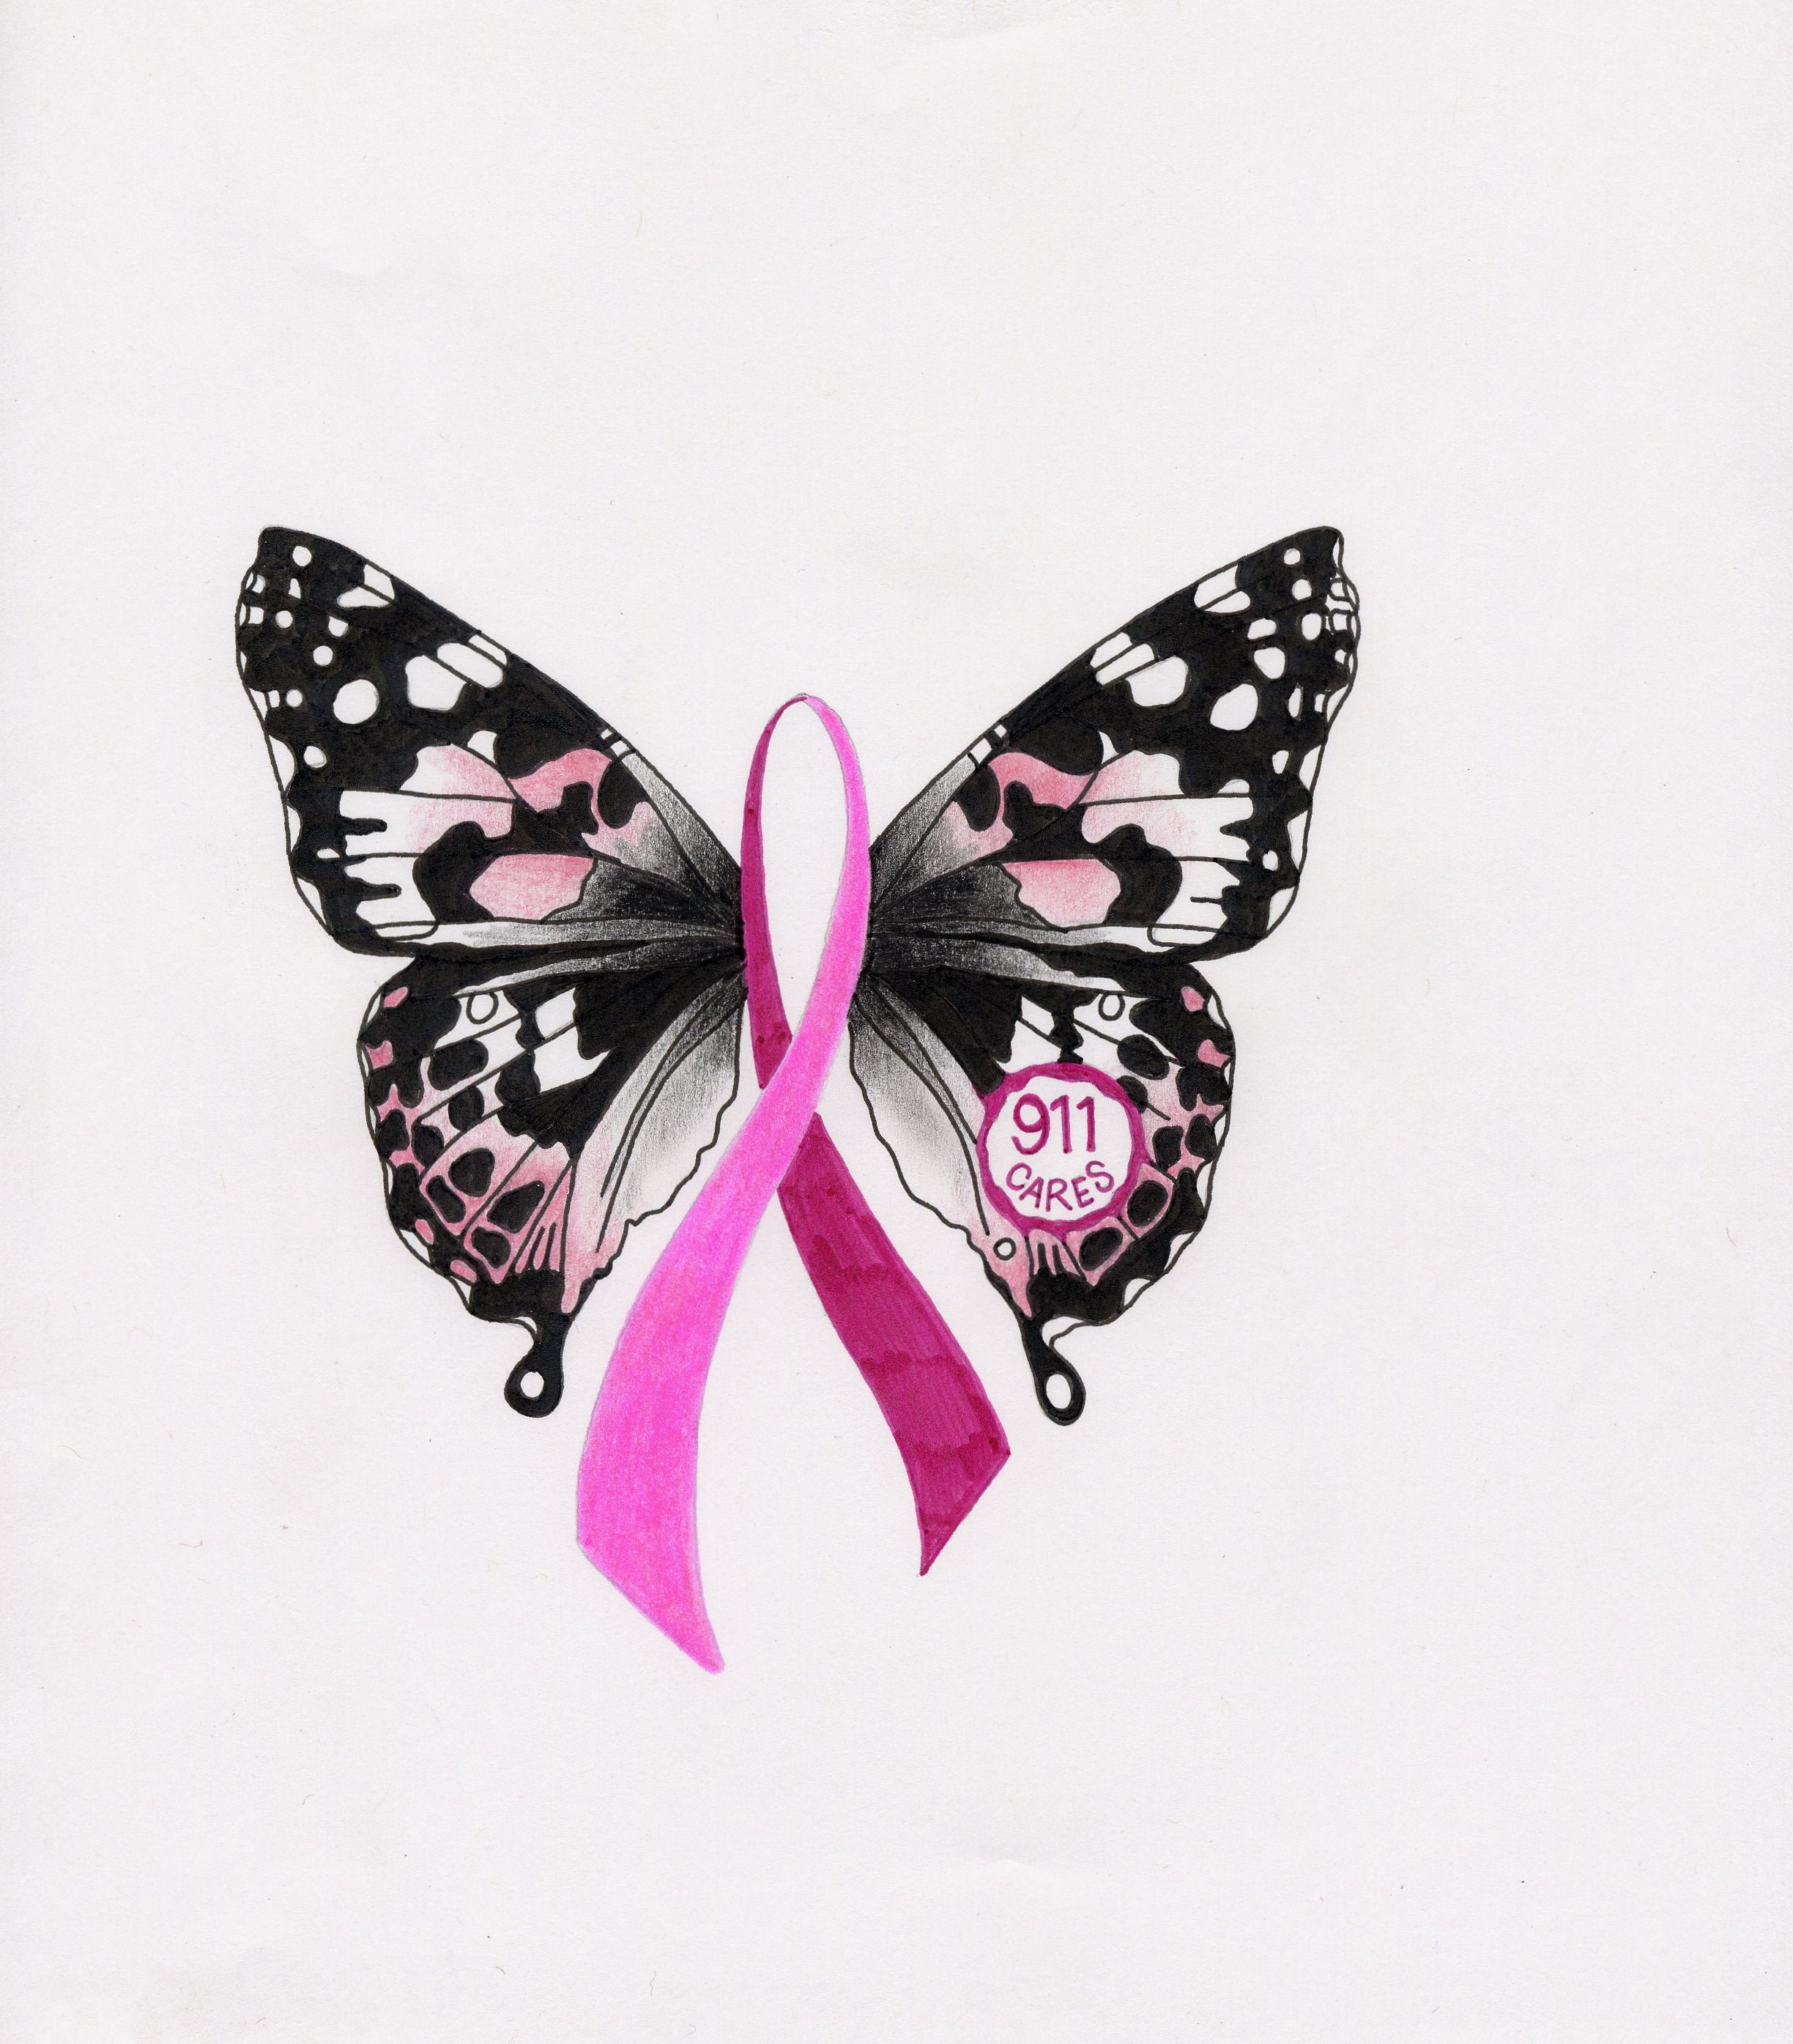 Misha S Blue Br**St Cancer Awareness Ideas And Designs